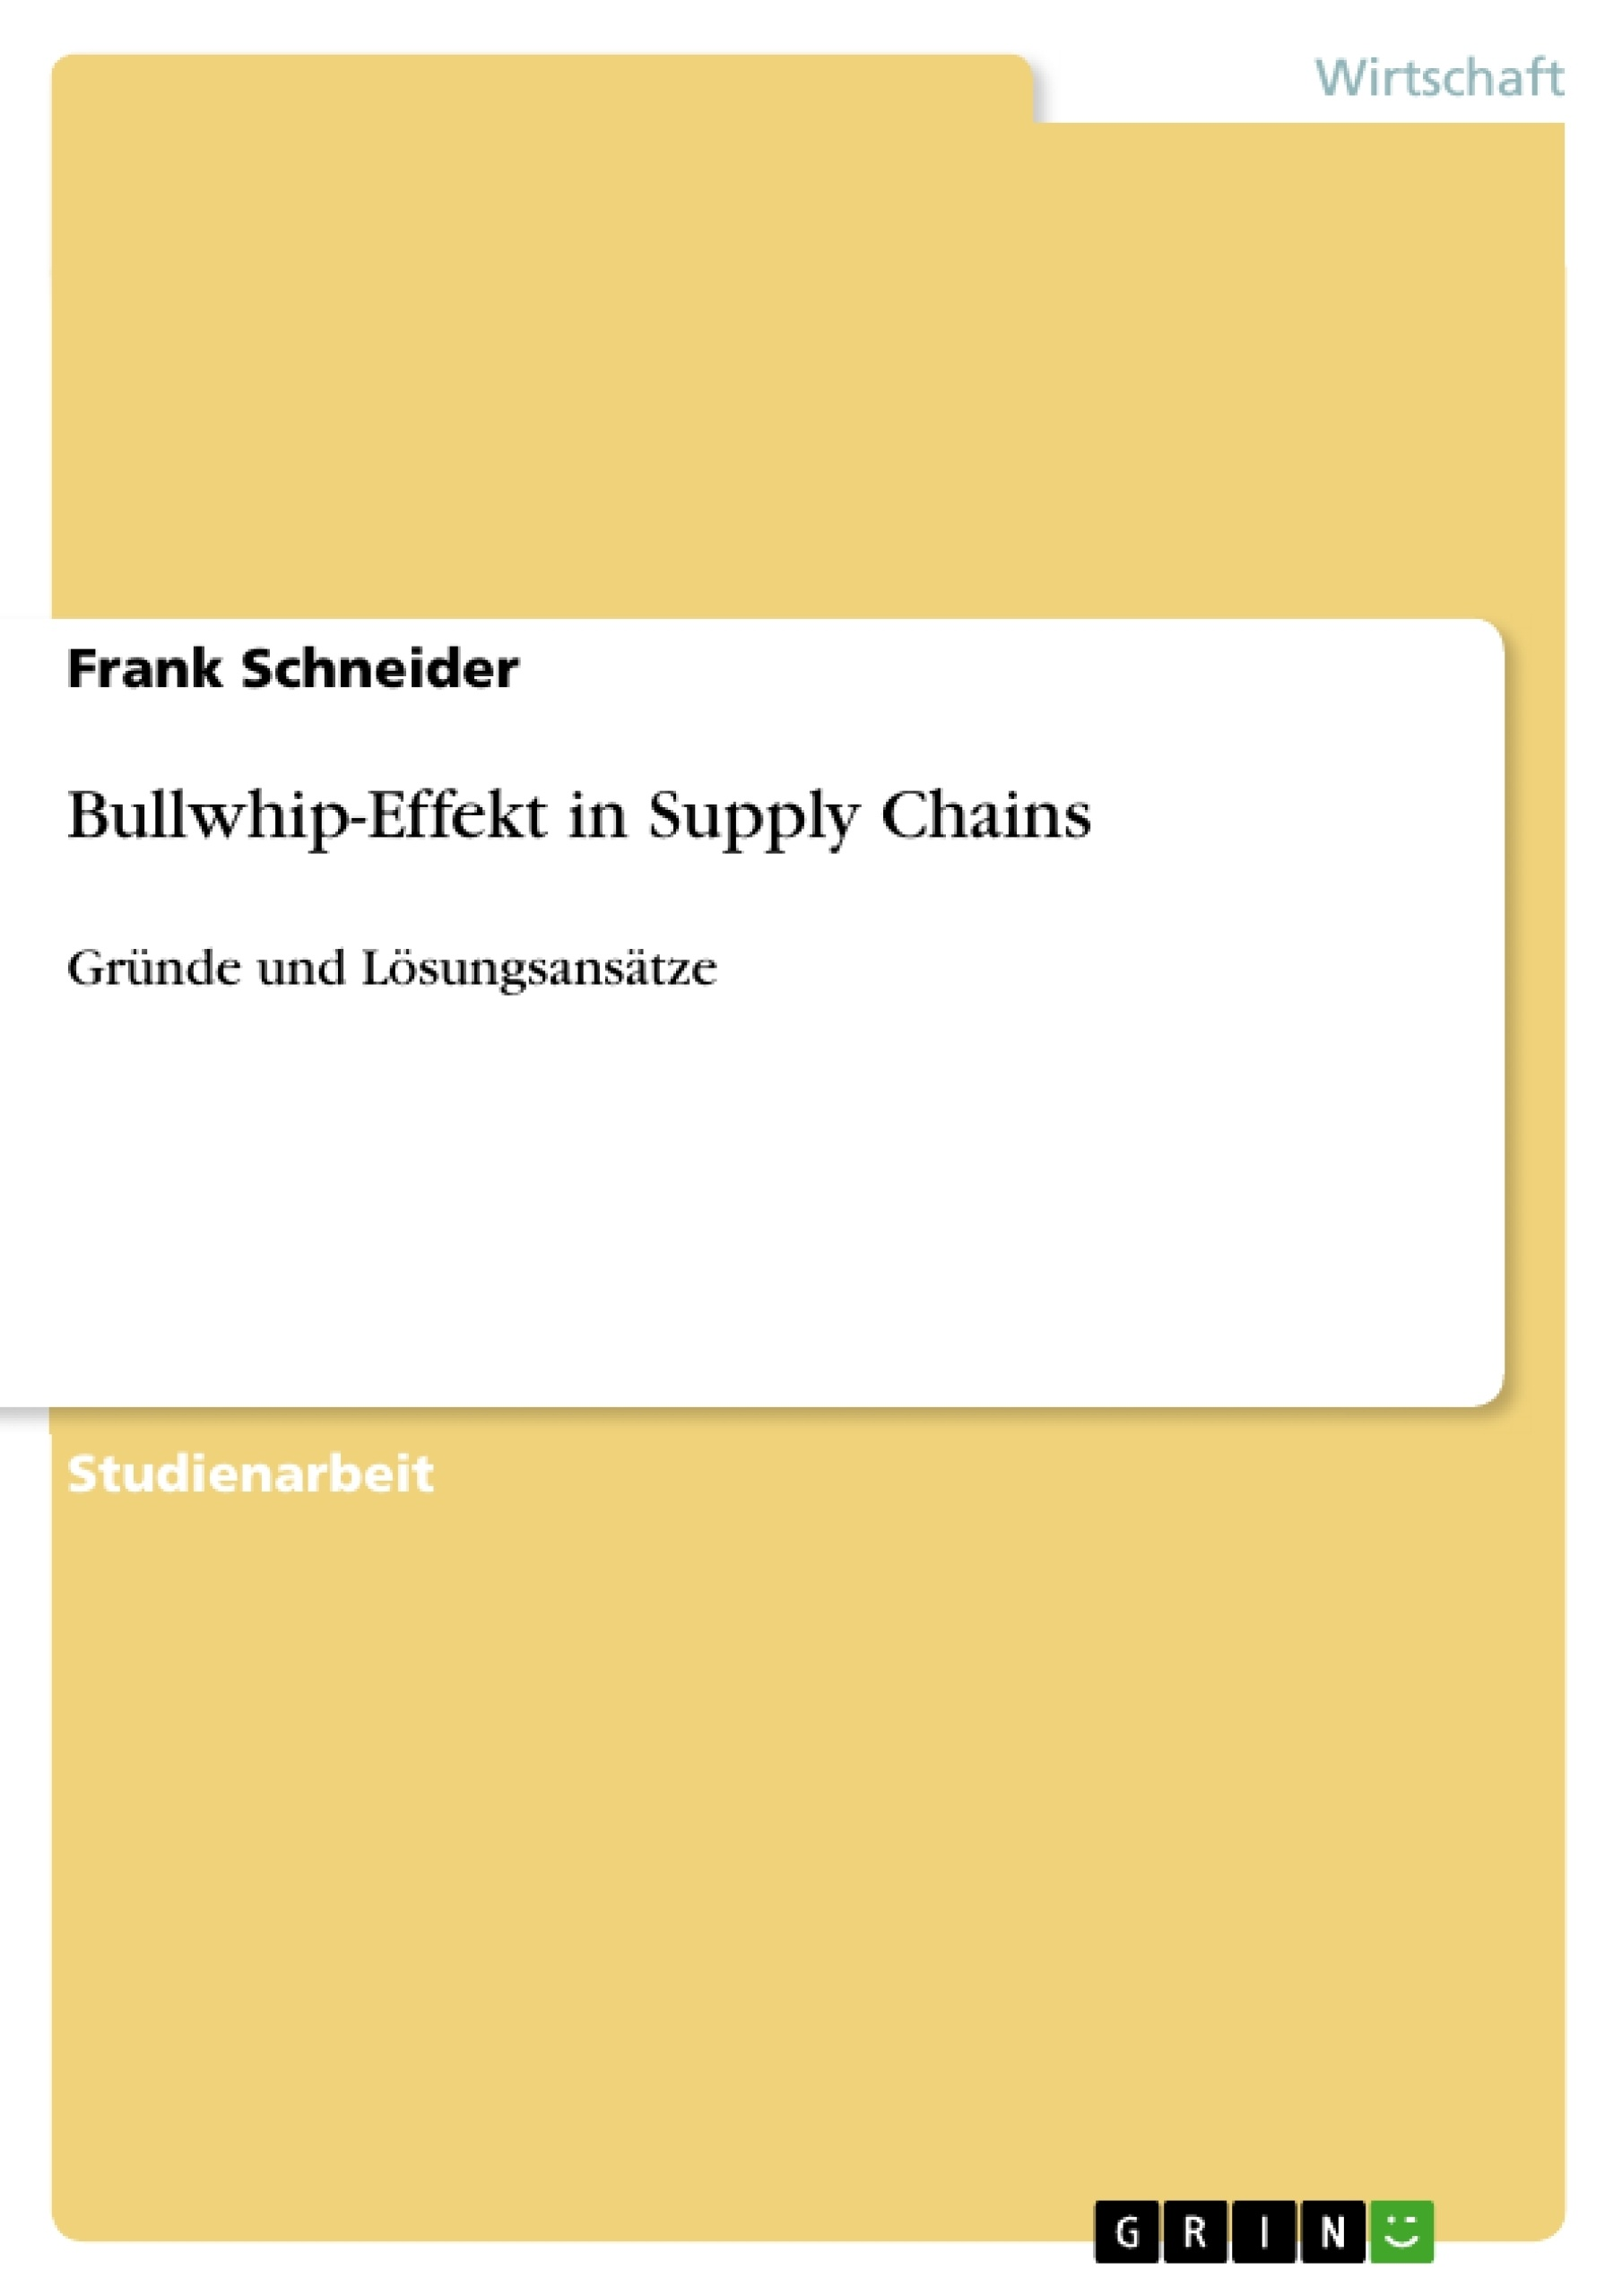 Titel: Bullwhip-Effekt in Supply Chains